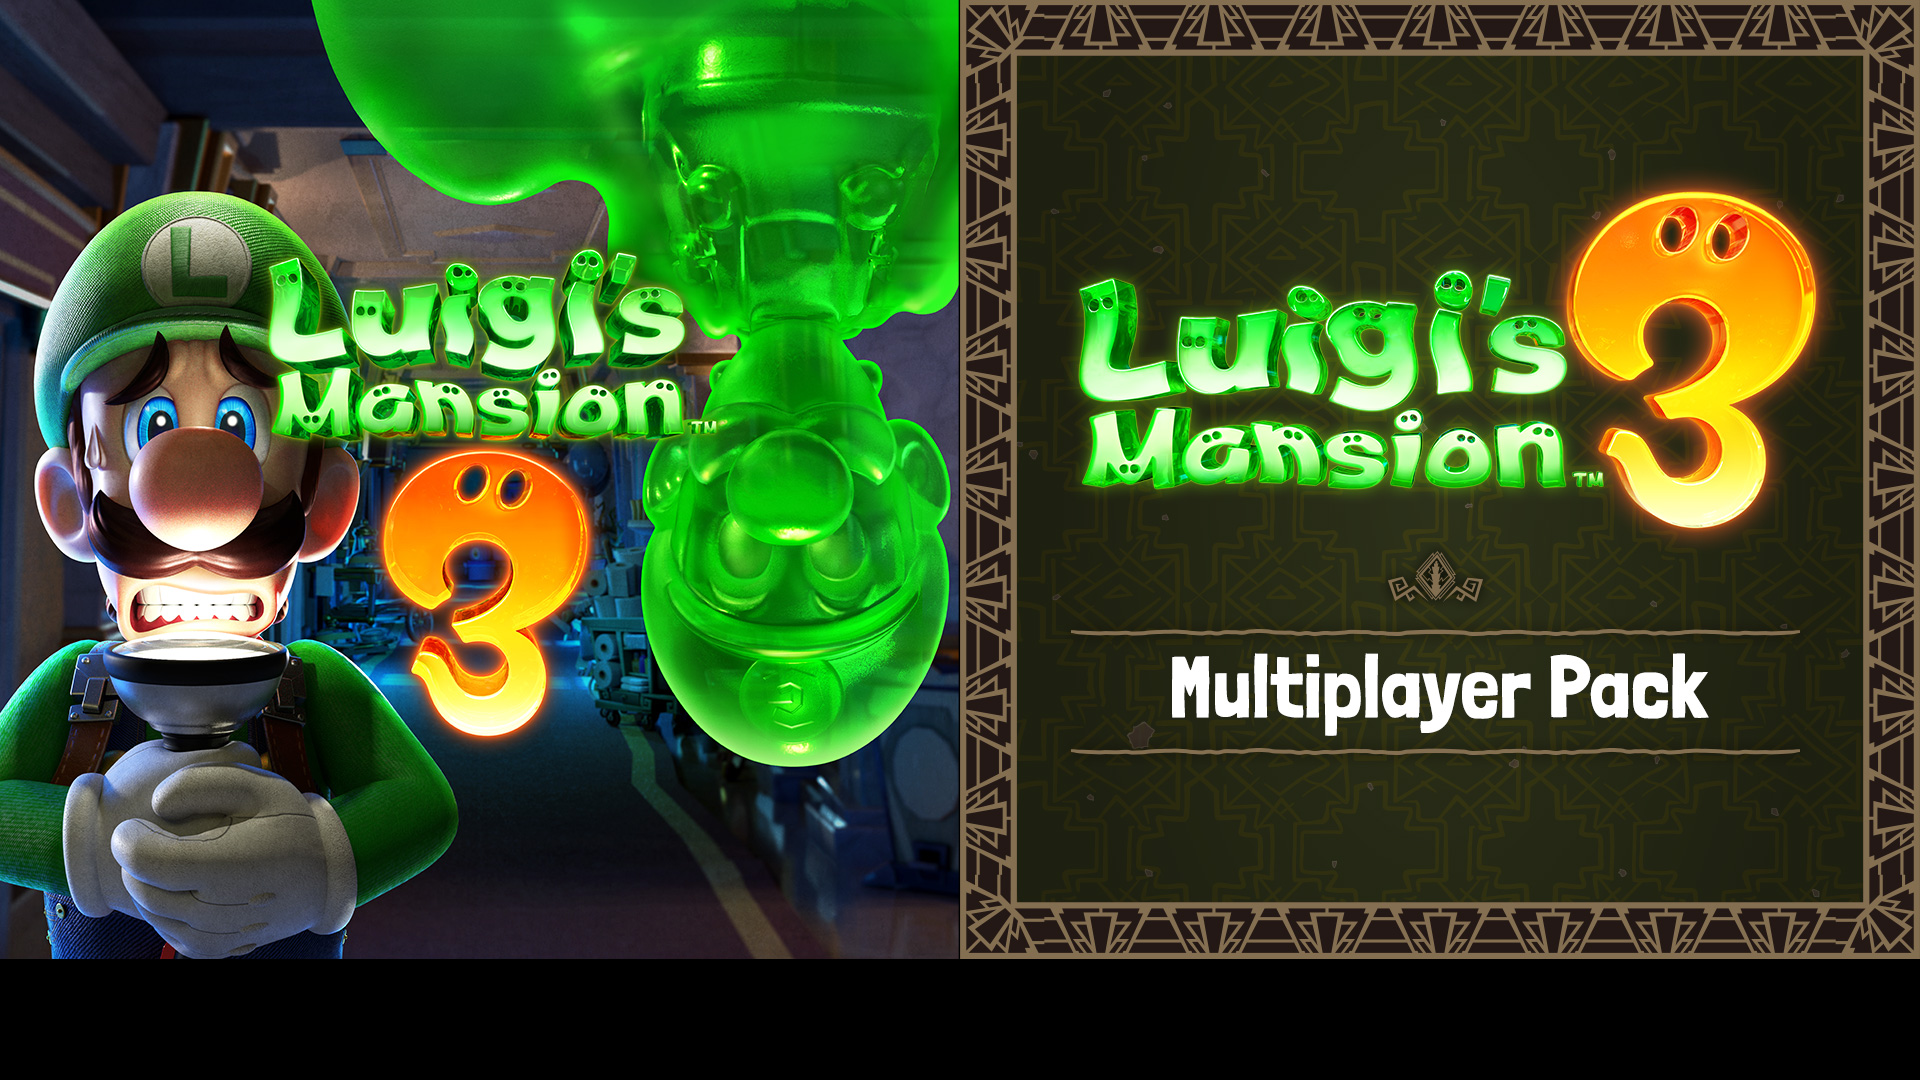 'Multiplayer Pack', el DLC para el multijugador de Luigi's Mansion 3